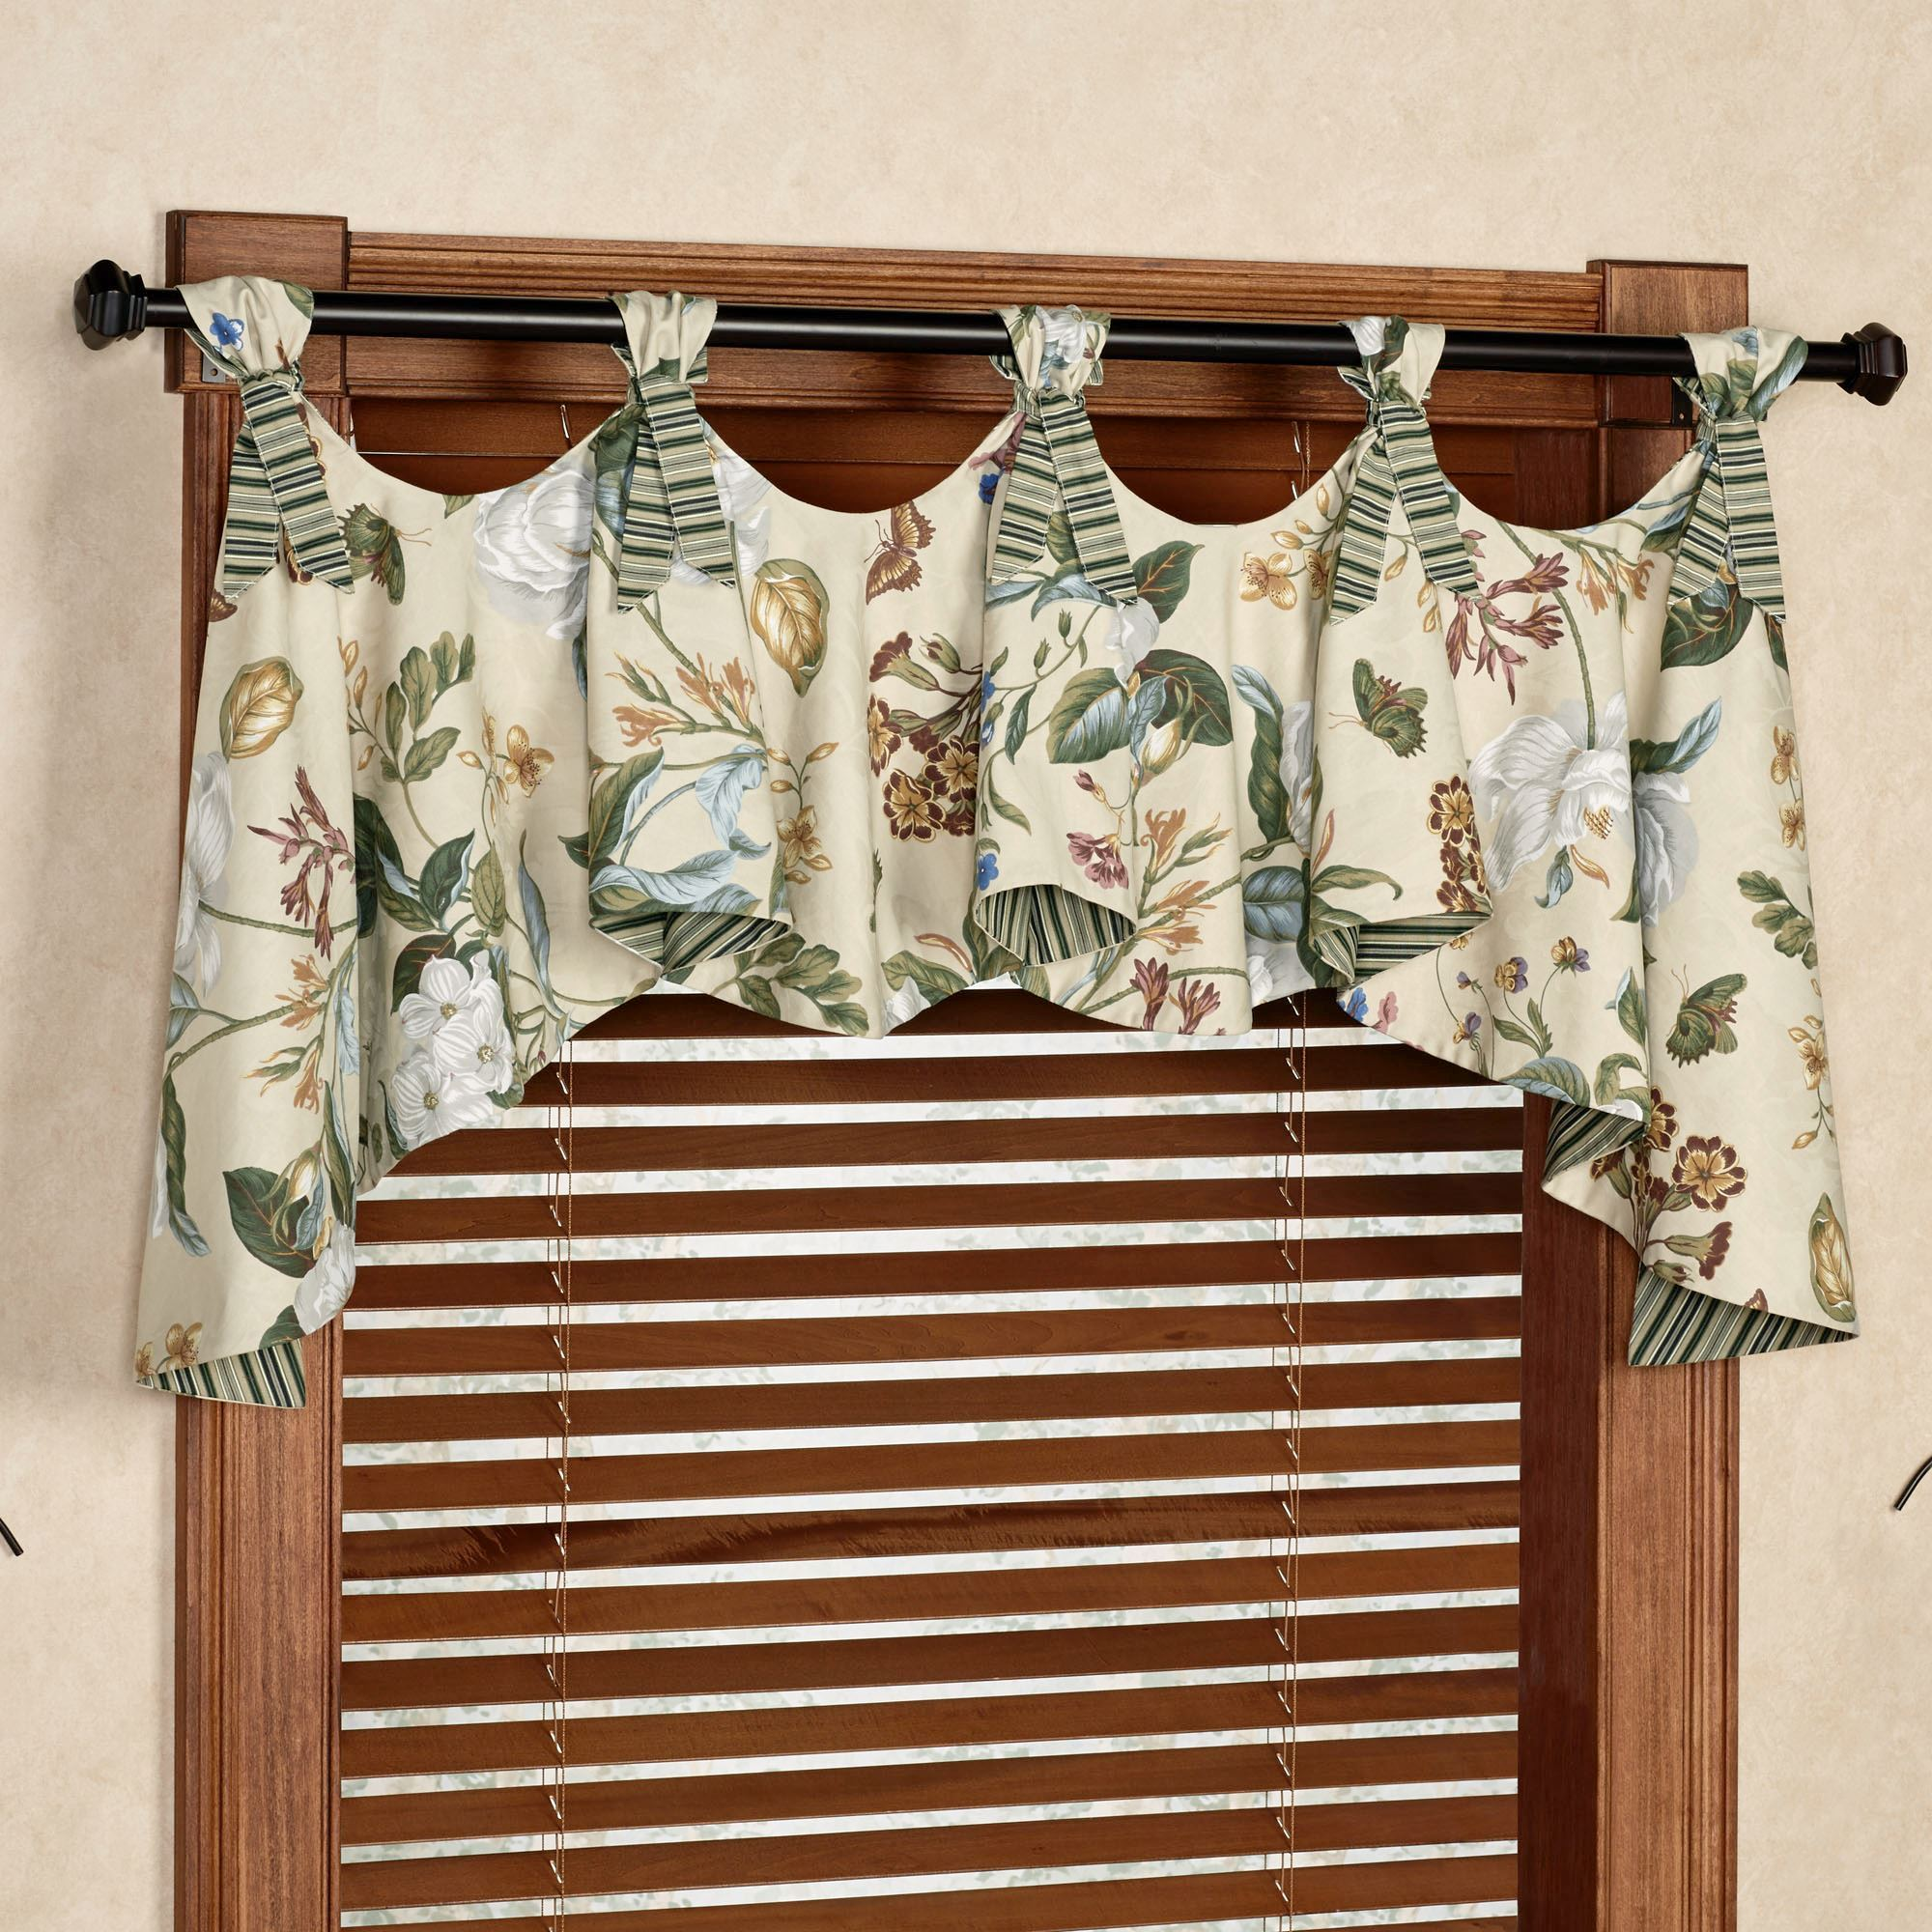 Valances Window Treatments Window Valances Can Change The Feel u0026 Look Of A Room